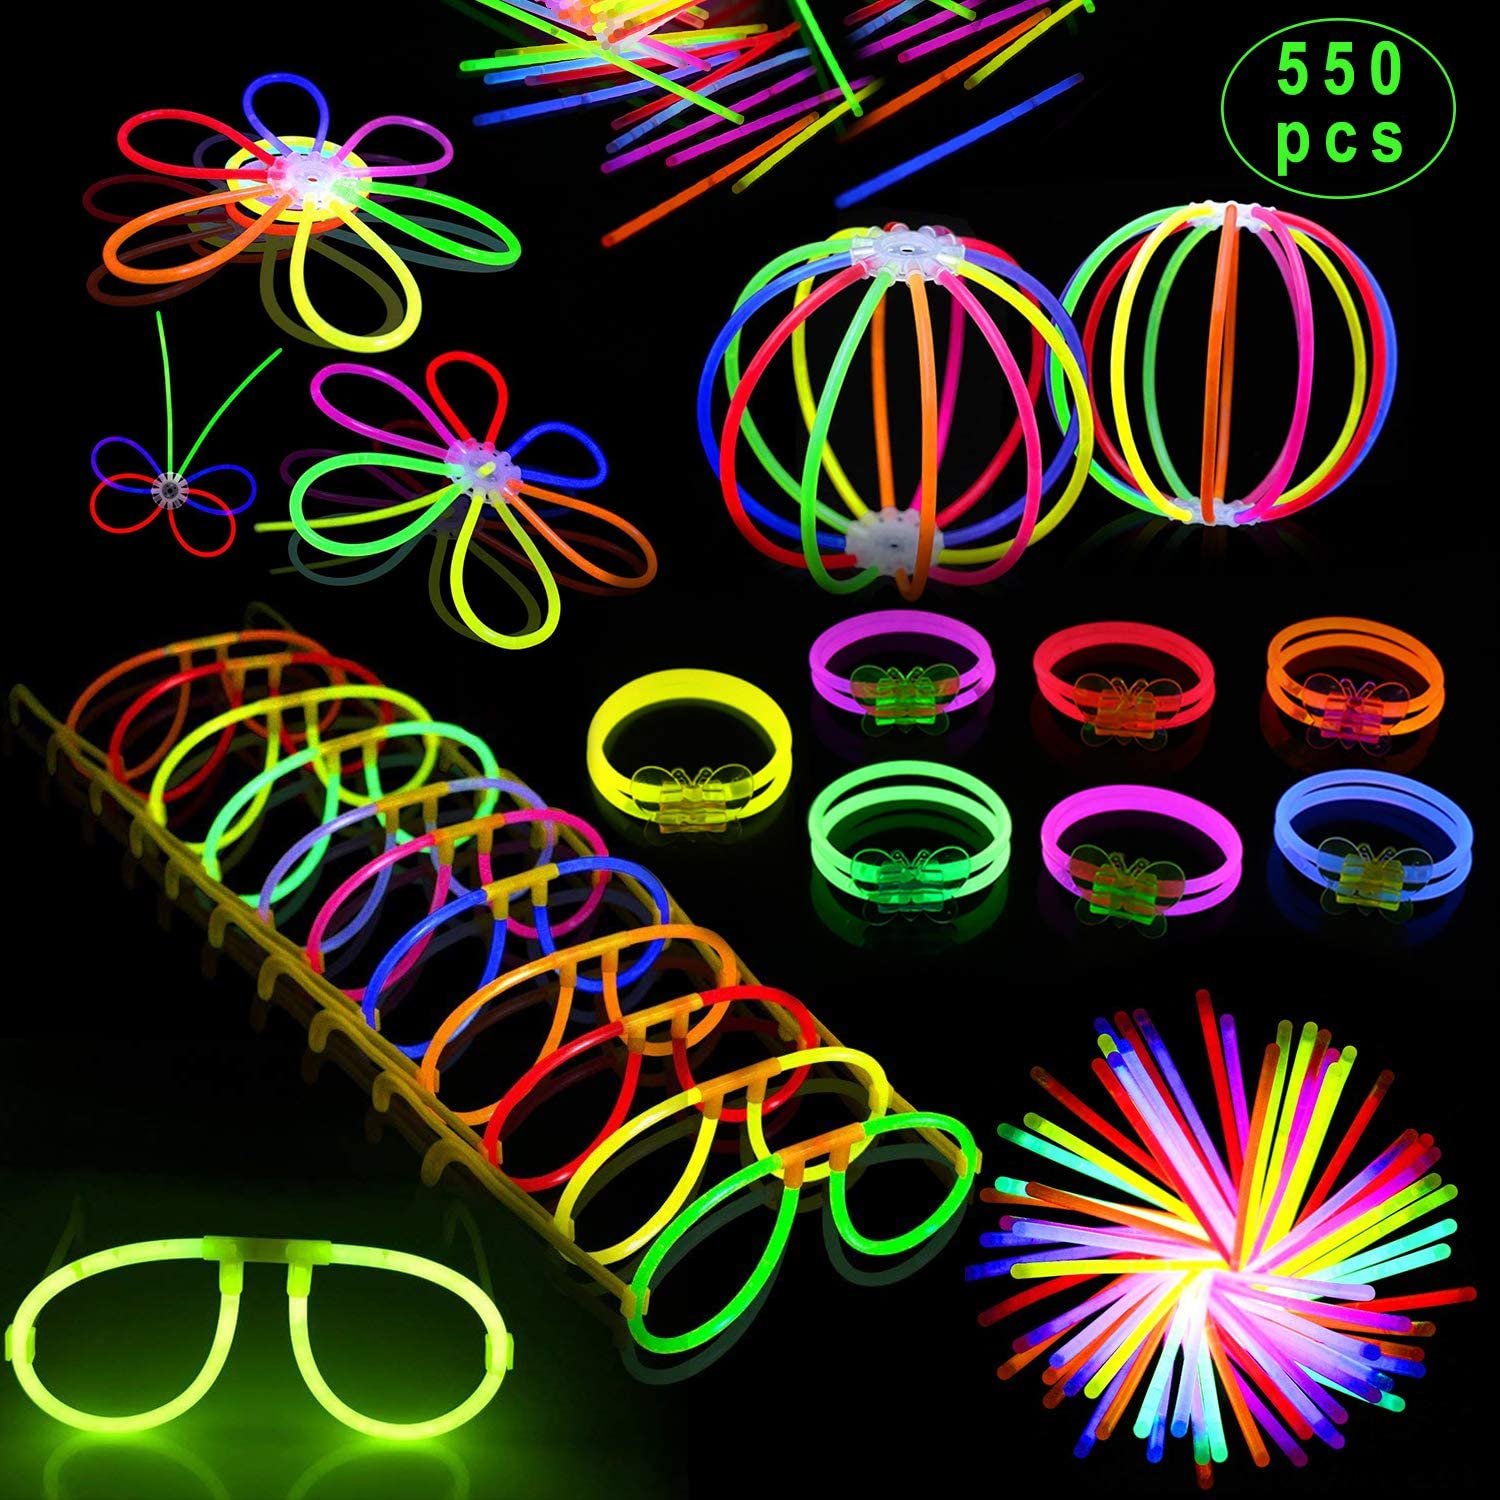 Inifty Glow Sticks Bulk Party Favors 300 Pack 8 in The Dark Party Supplies Light Sticks Glow Necklaces Bracelets Kids 300 Pack